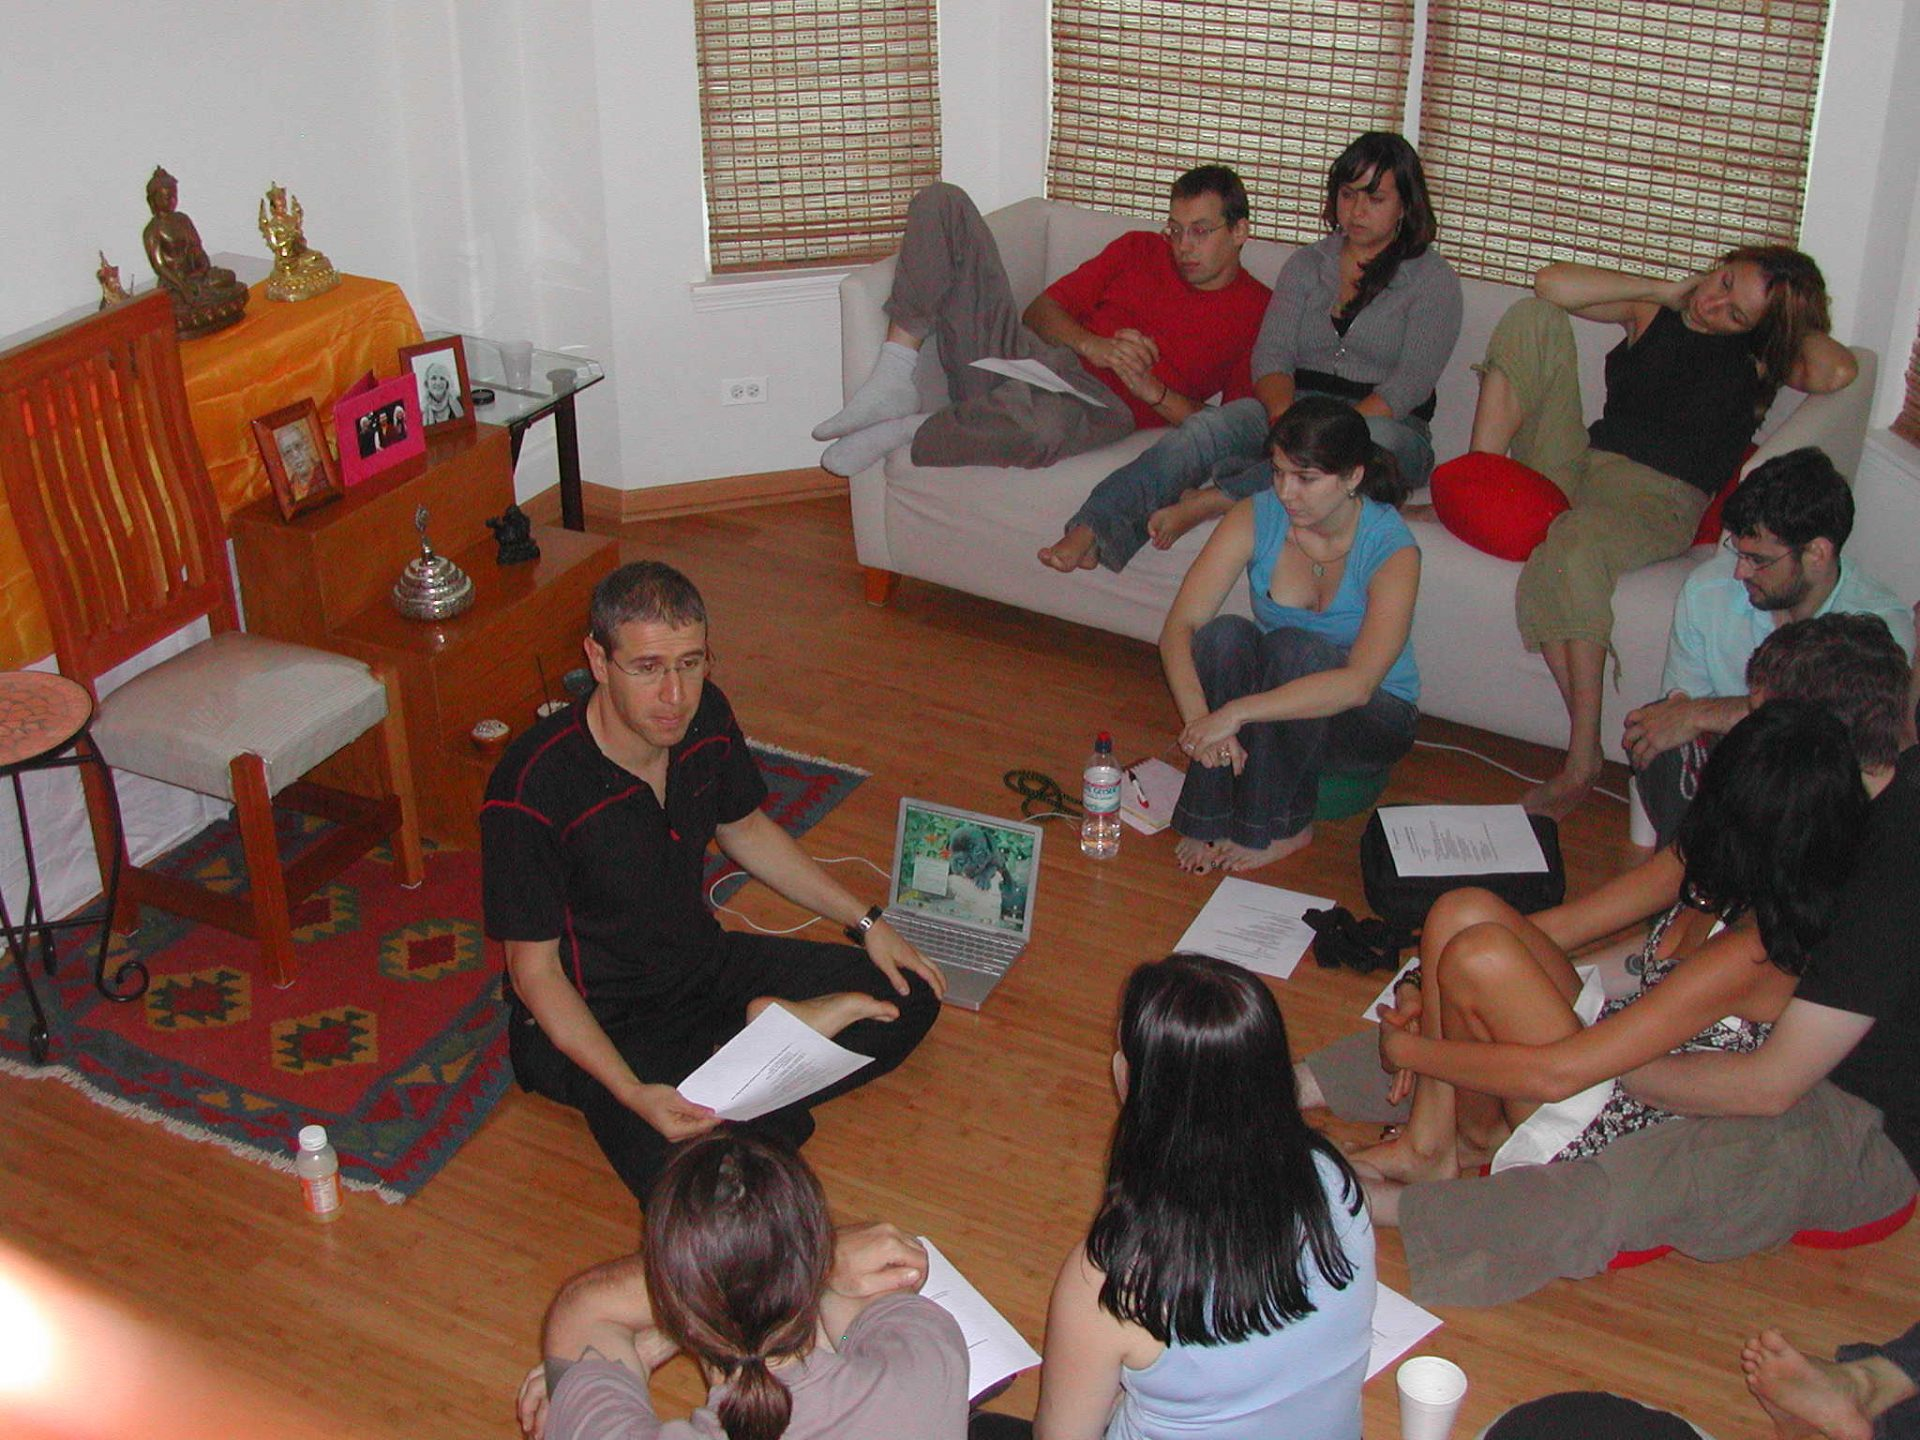 university center buddhist singles University zen center in boulder, reviews by real people yelp is a fun and easy way to find, recommend and talk about what's great and not so great in boulder and beyond.